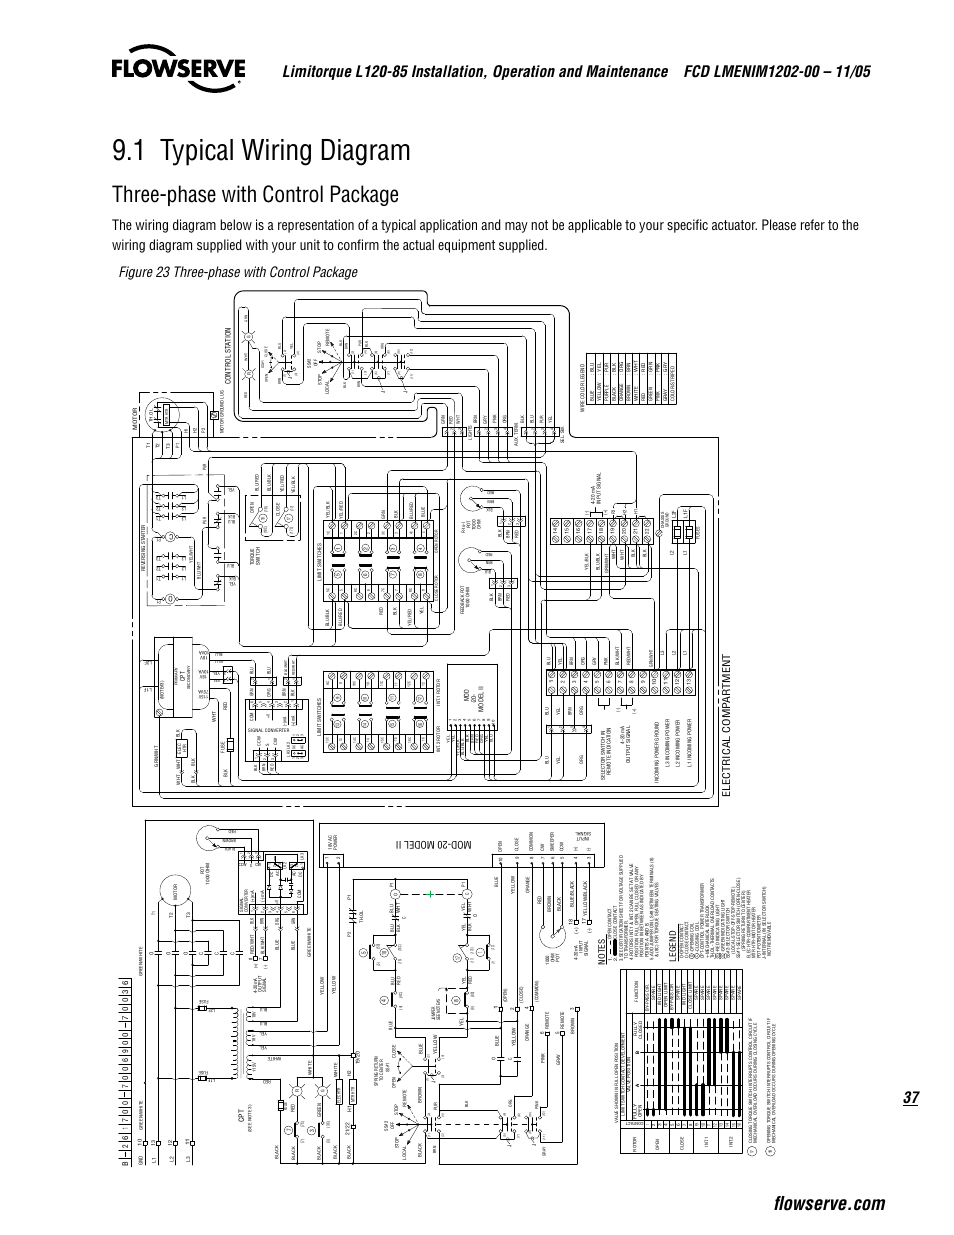 1 Typical Wiring Diagram  Three